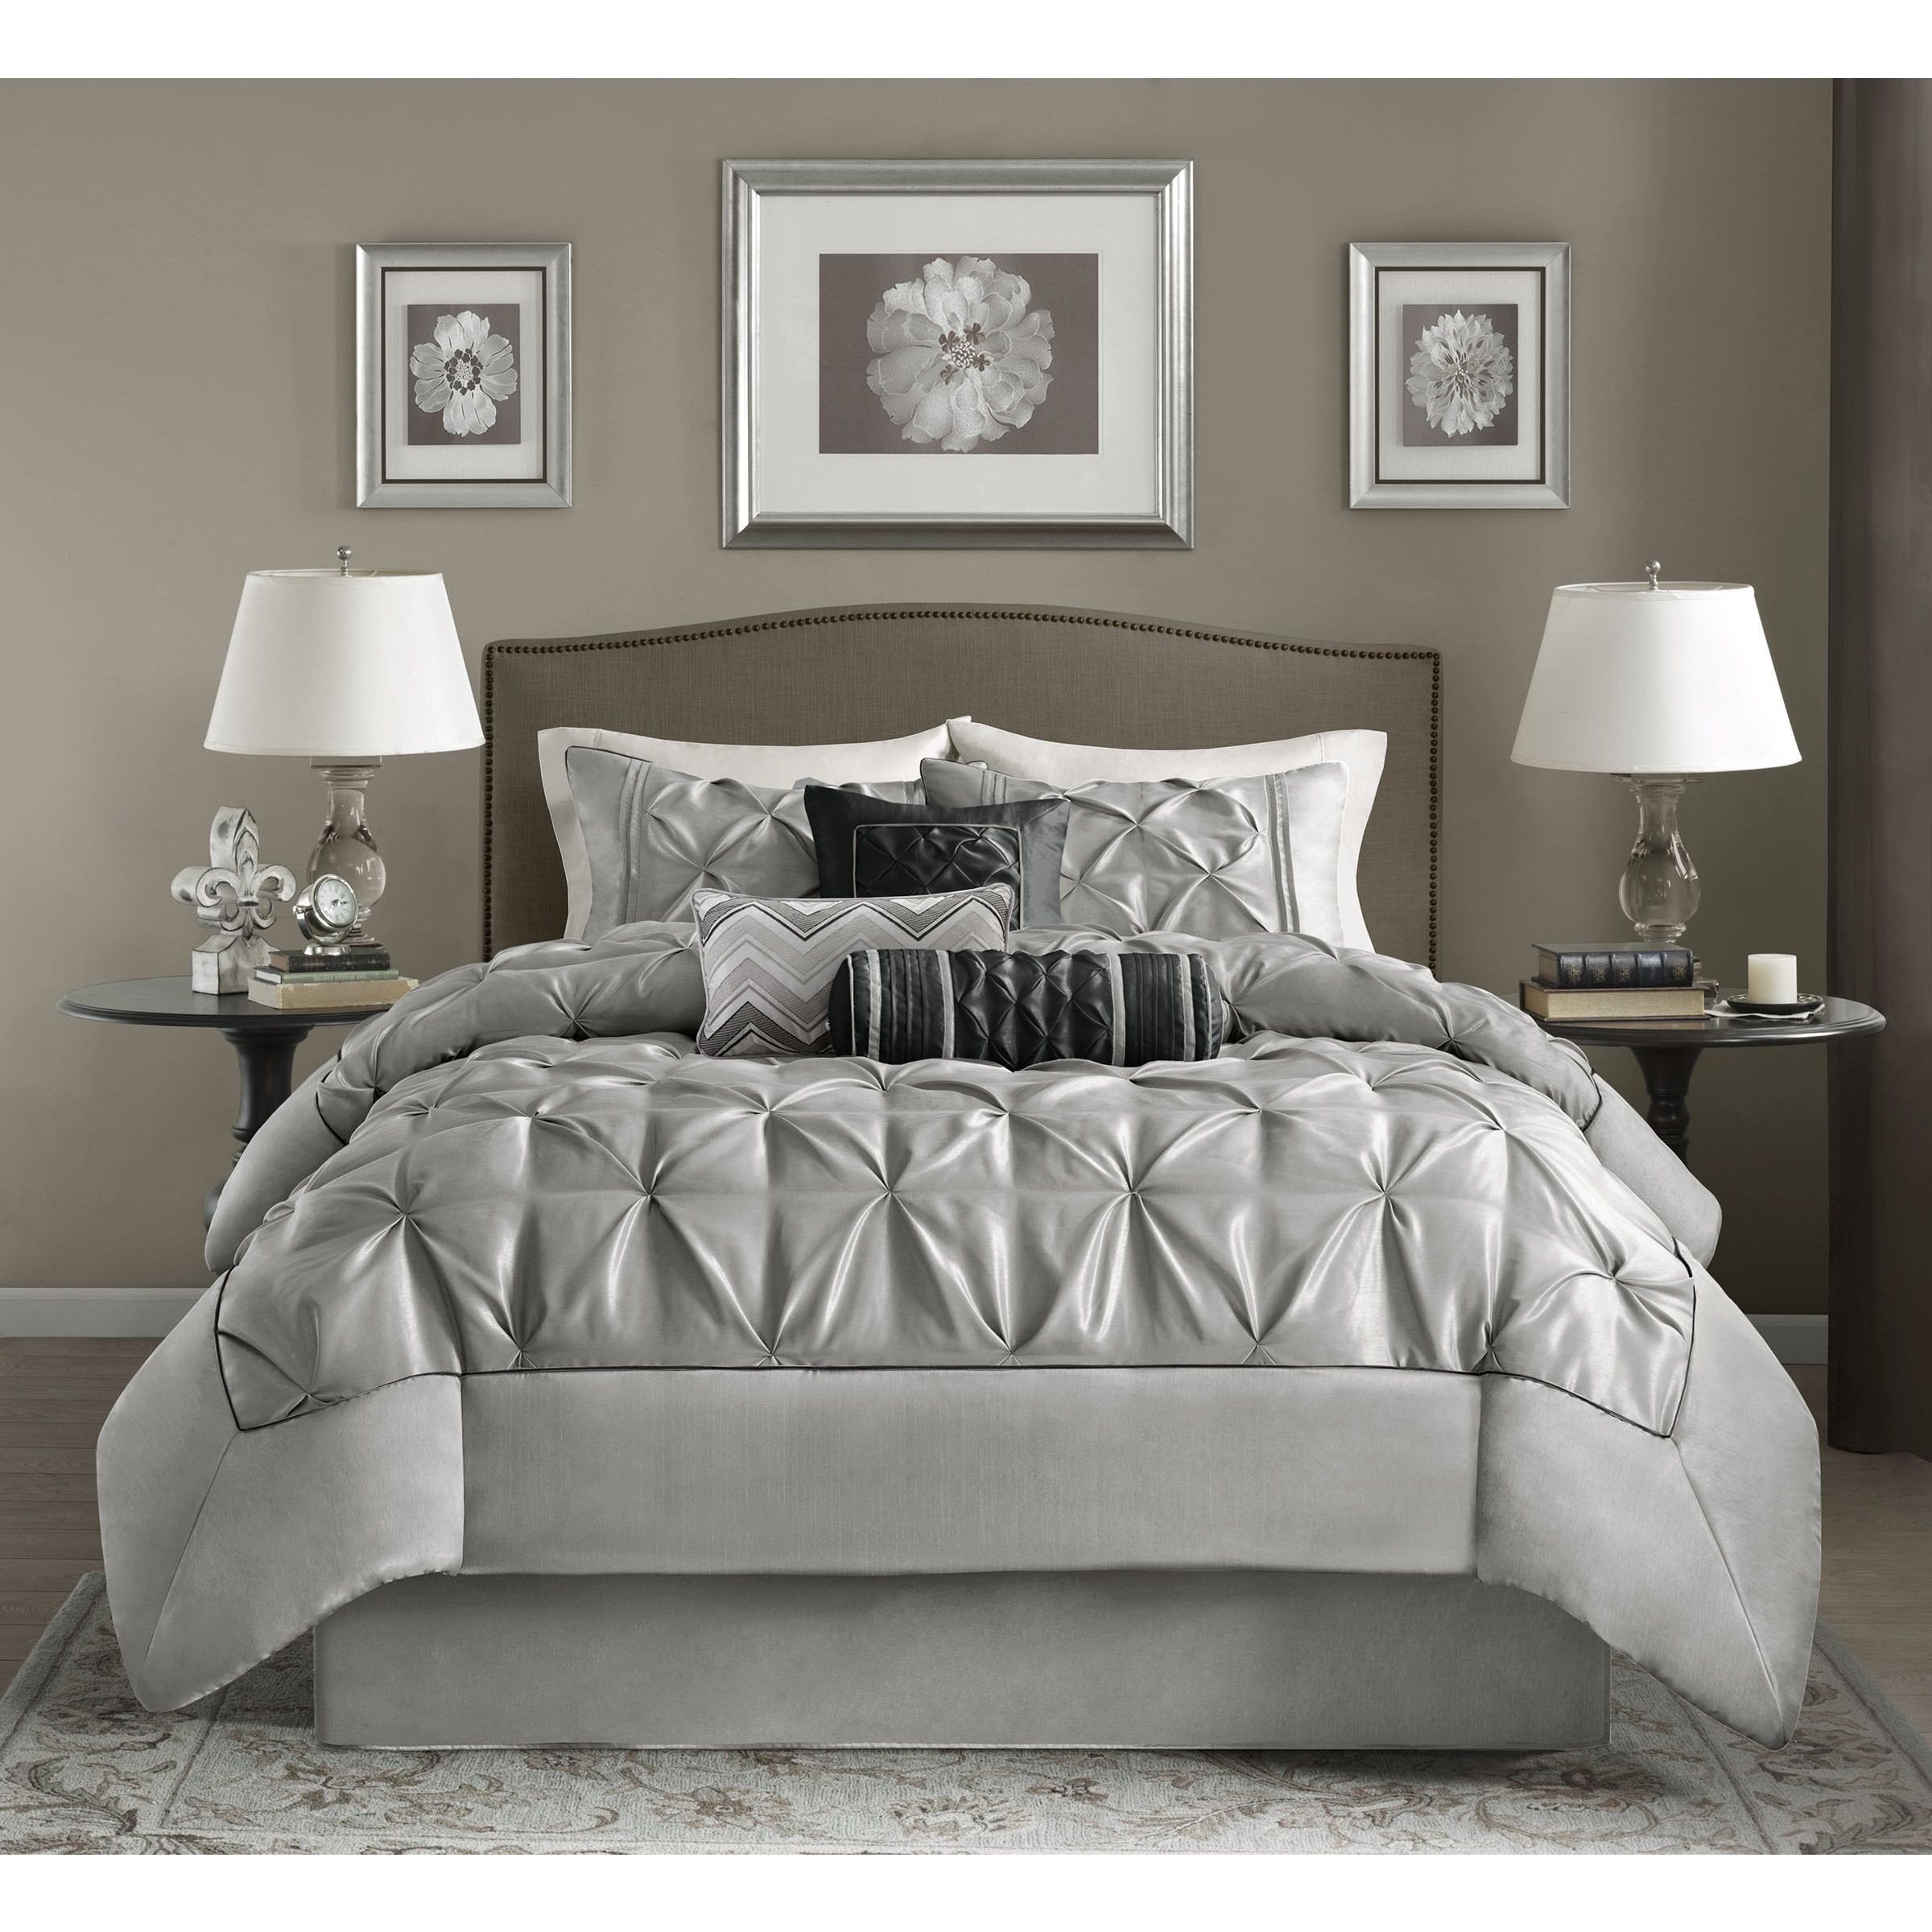 Grey and Tan Bedroom Unique This Beautifully Tufted Bed is From the Cynthia Bedding